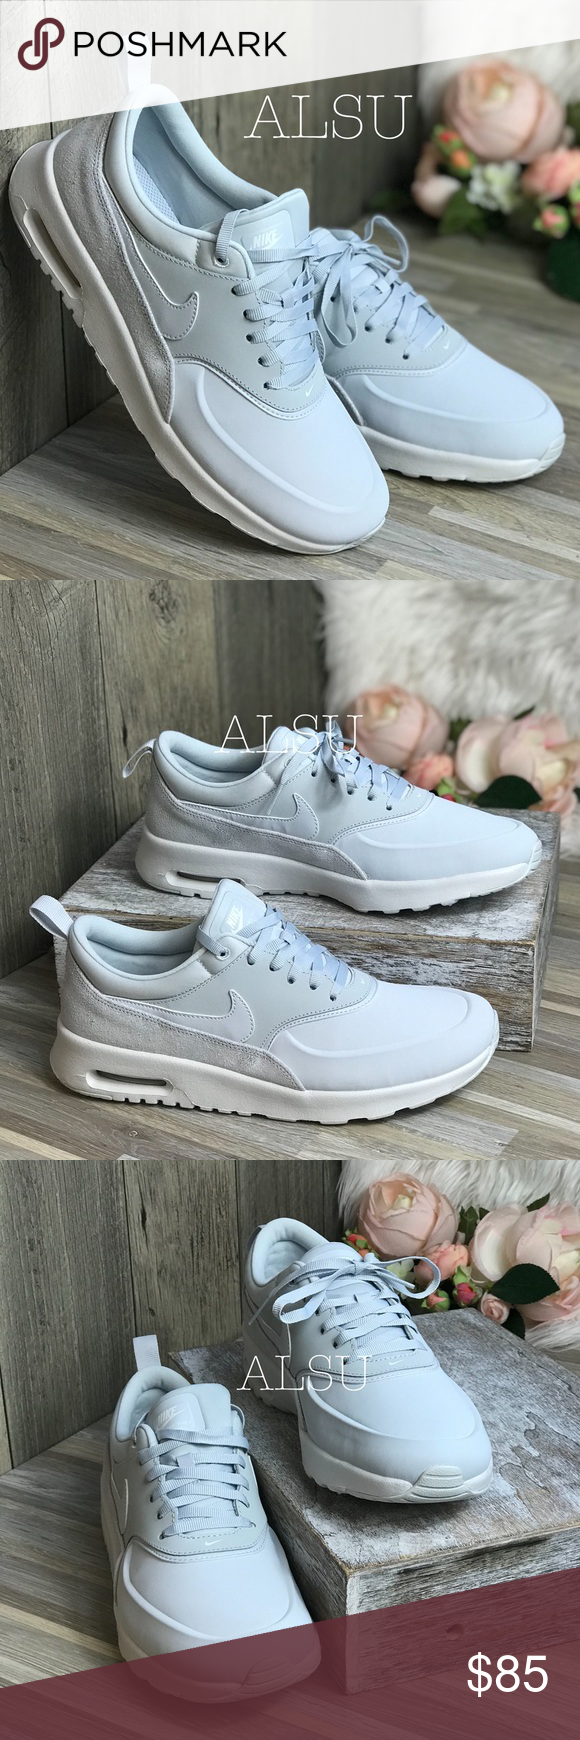 NWT Nike Air Max Thea PRM Pure Platinum W AUTHENT Brand new